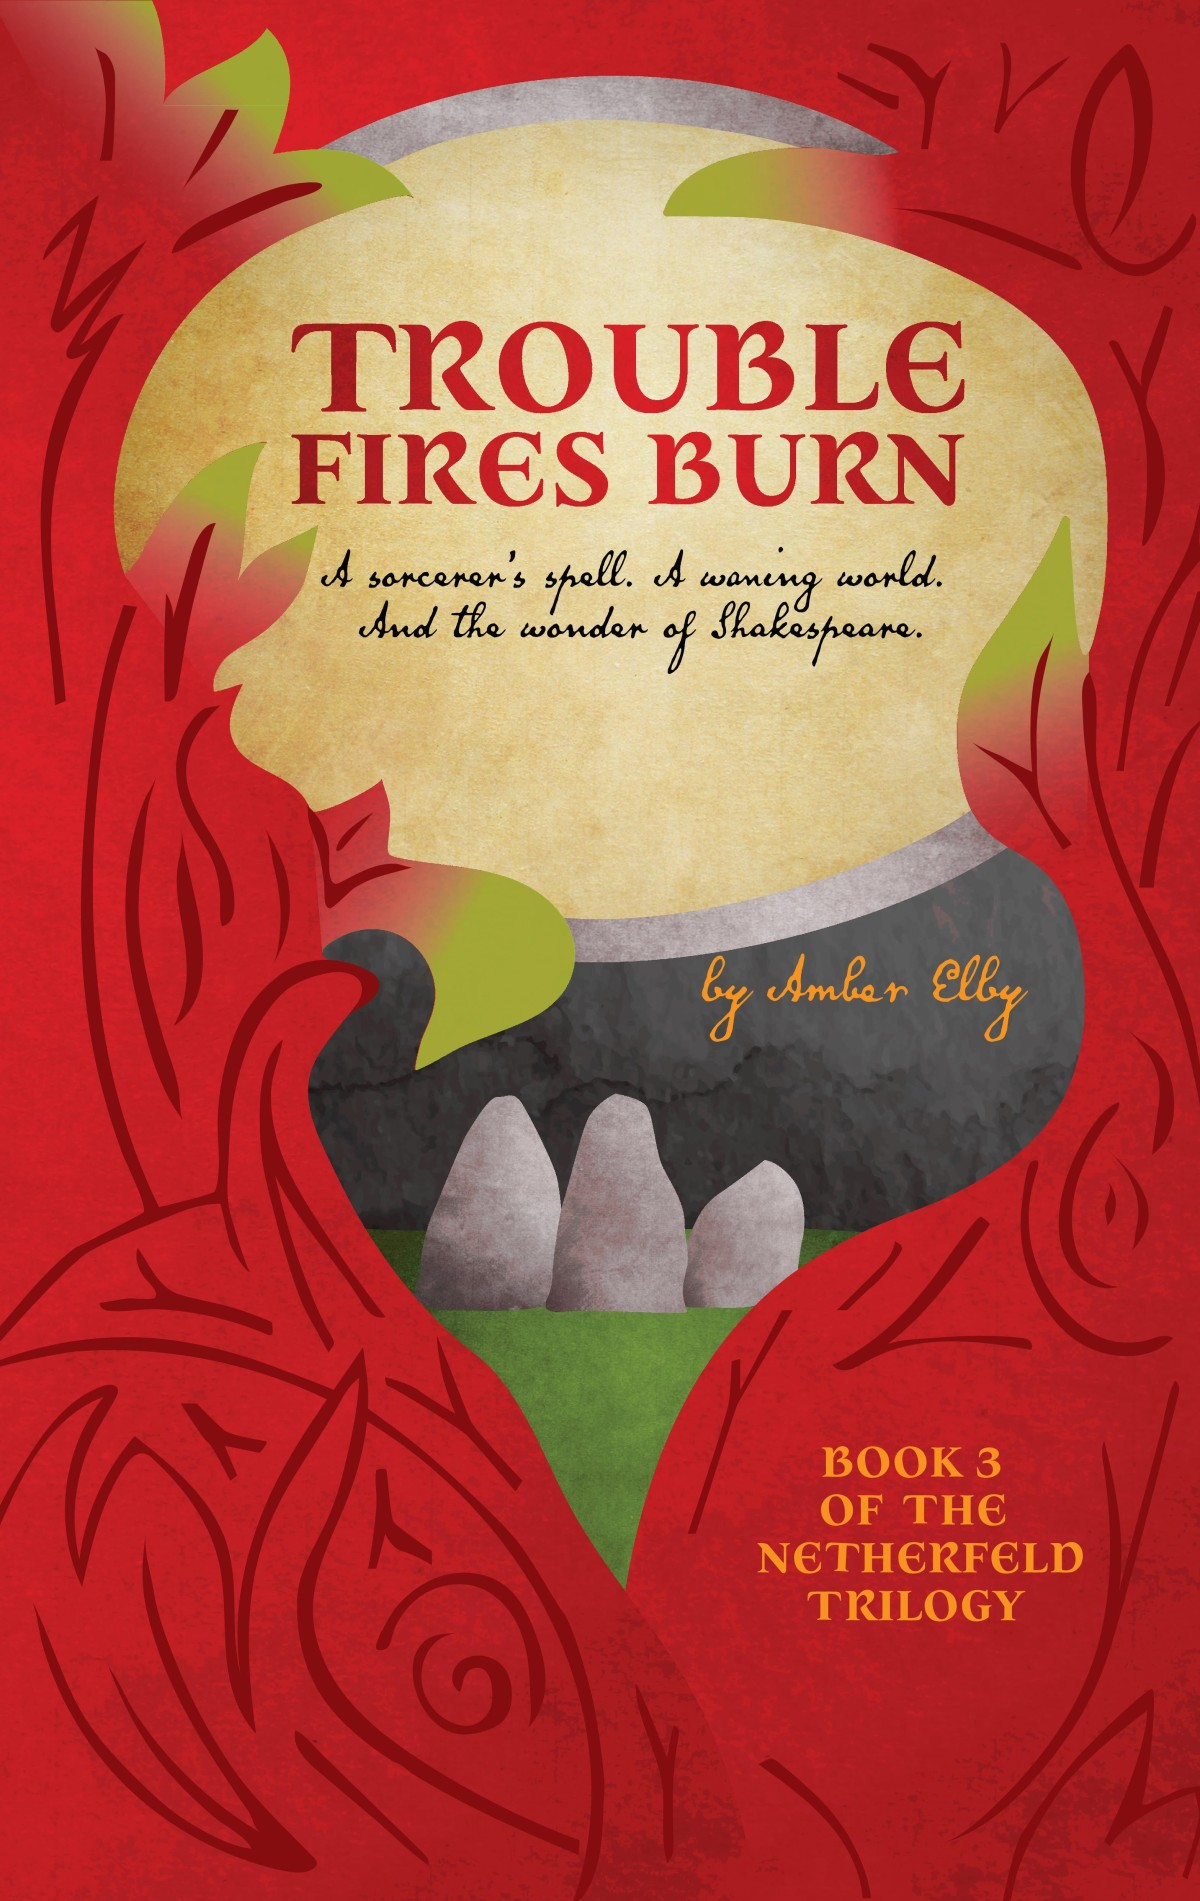 Cover Reveal: Trouble Fires Burn (The Netherfeld Trilogy #3) by Amber Elby